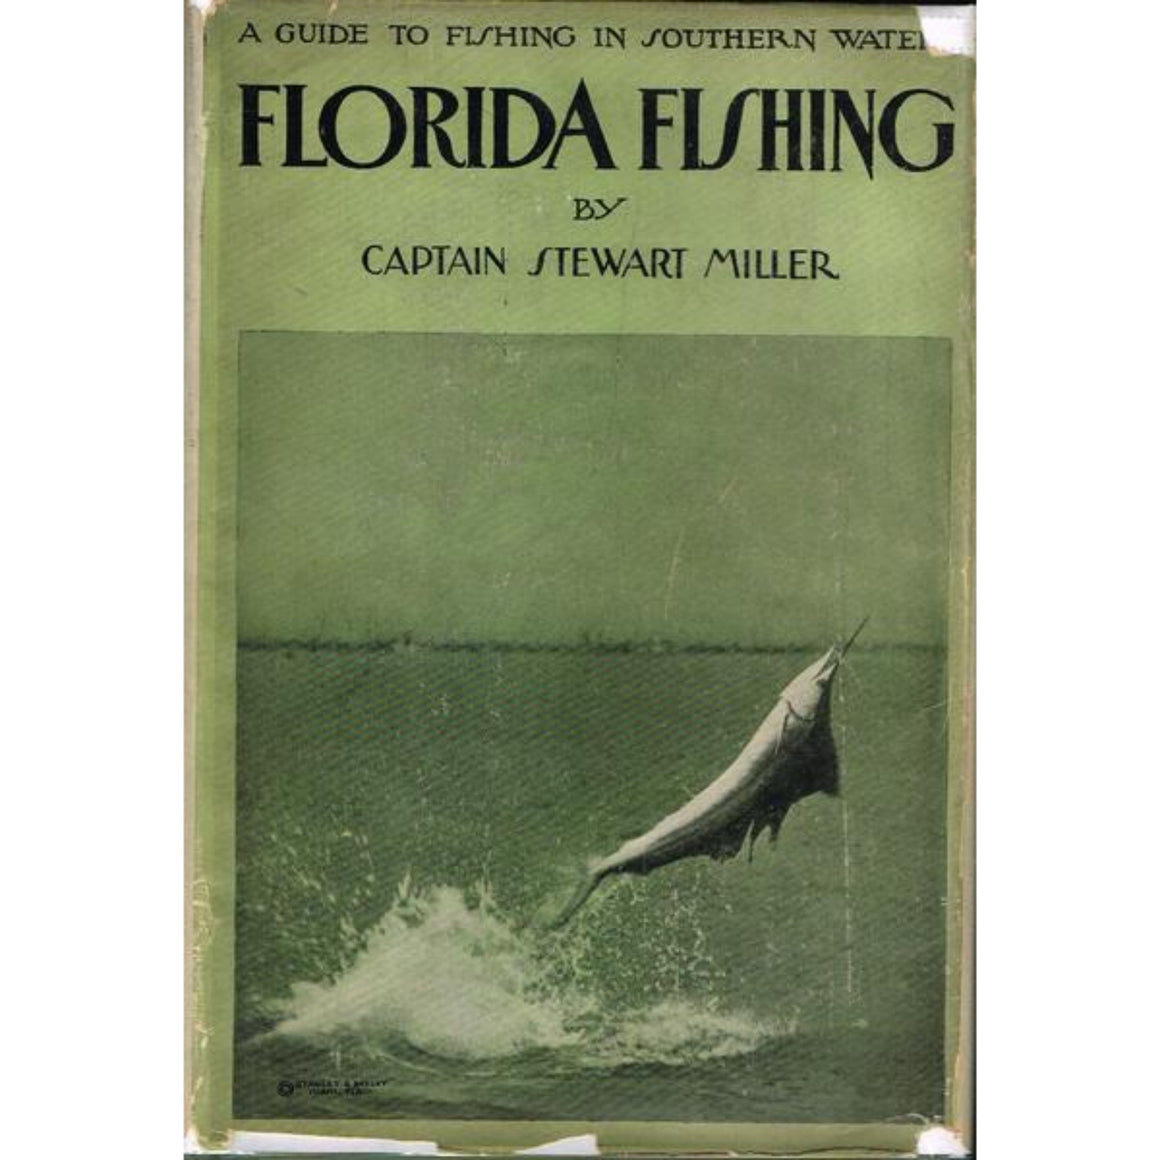 Florida Fishing: A Guide To Fishing in Southern Waters